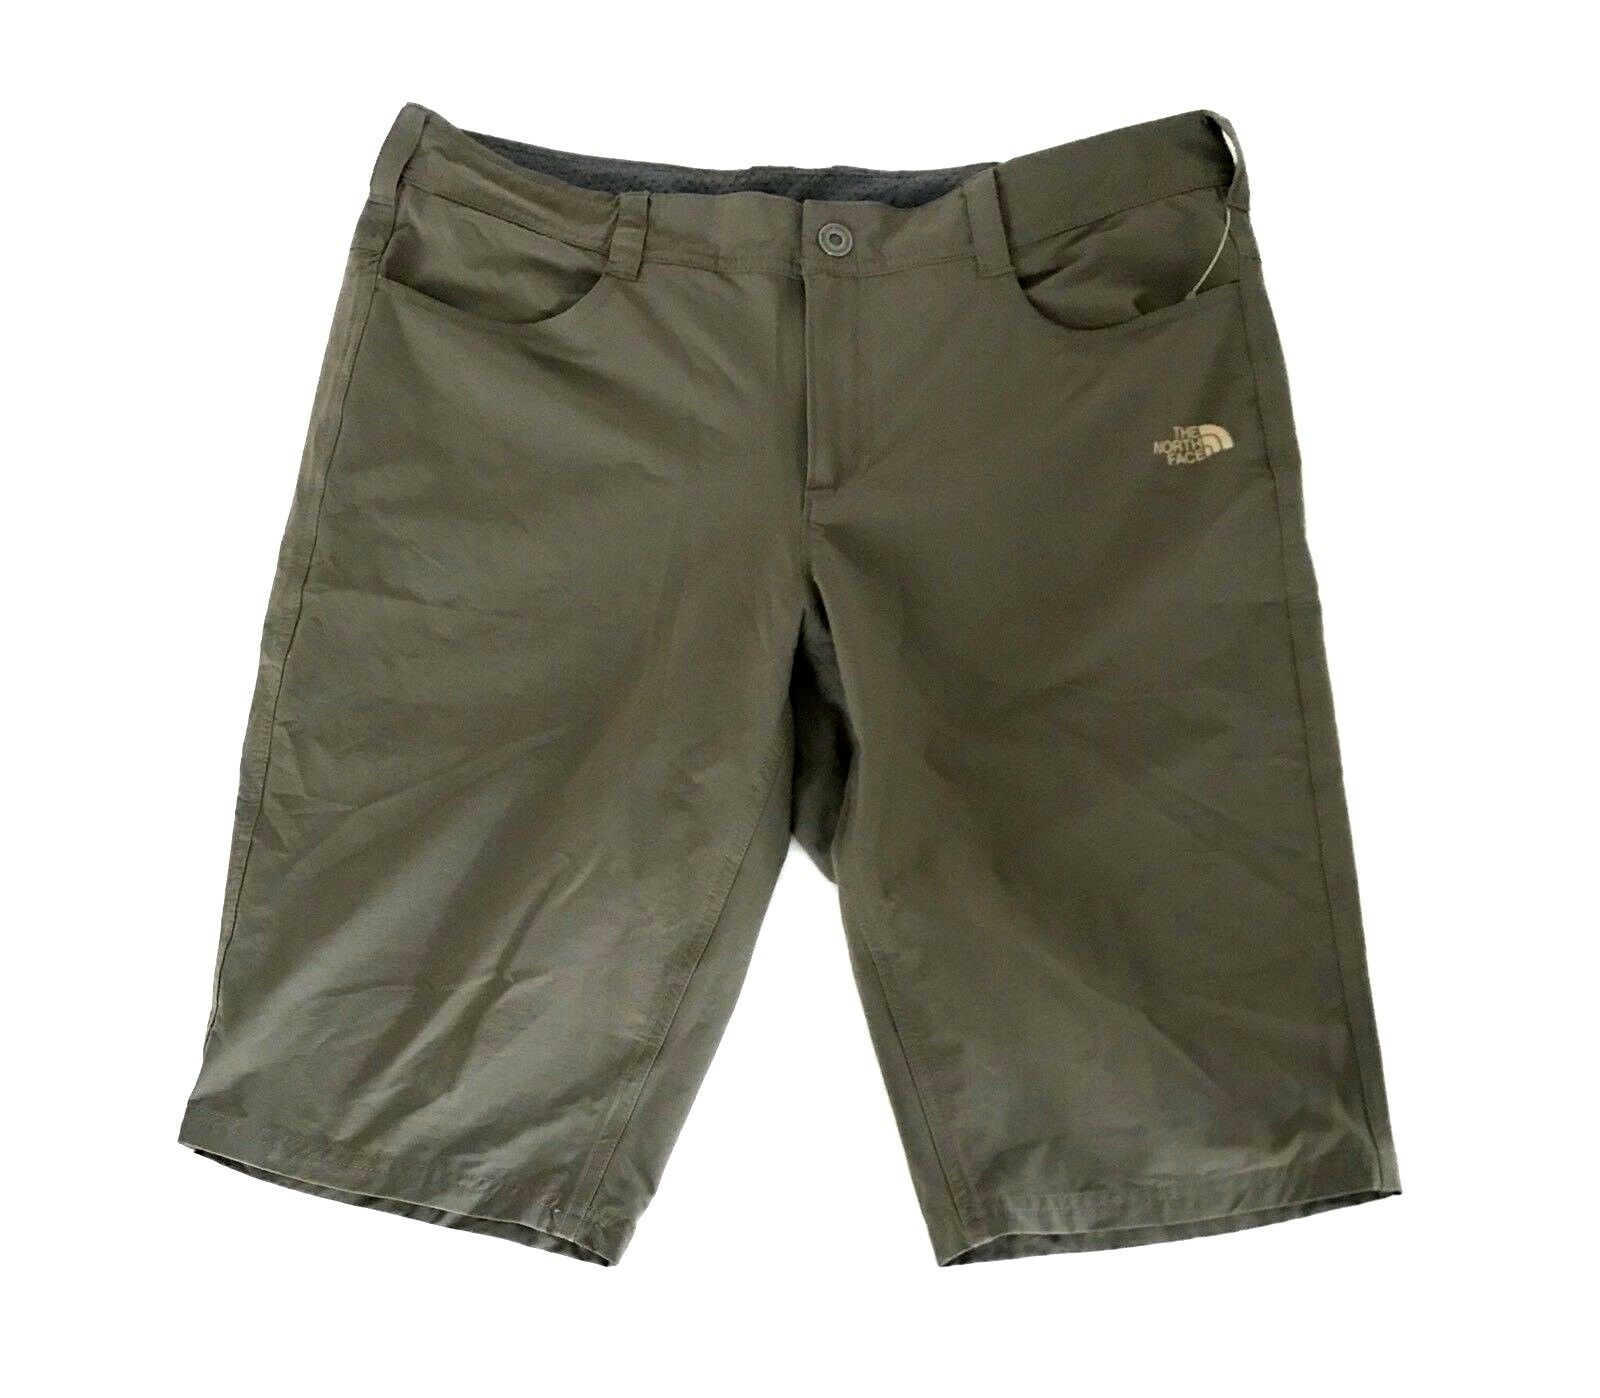 The North Face Donna Taggart Long Shorts Size 12 x 13 marrone Hiking Weimaraner